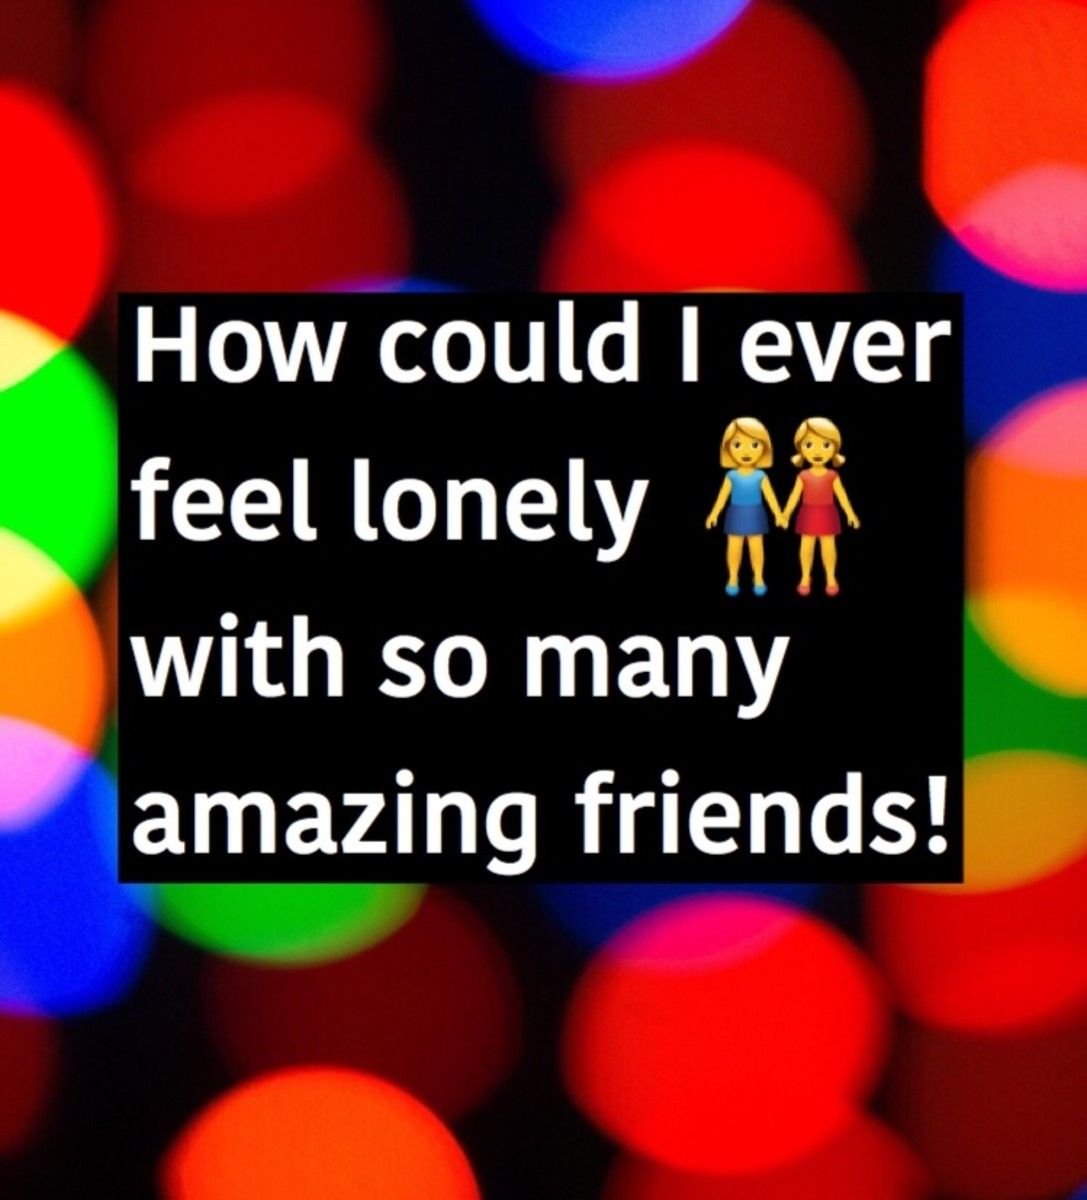 Facebook Status Updates And Quotes About Being Alone And Lonely